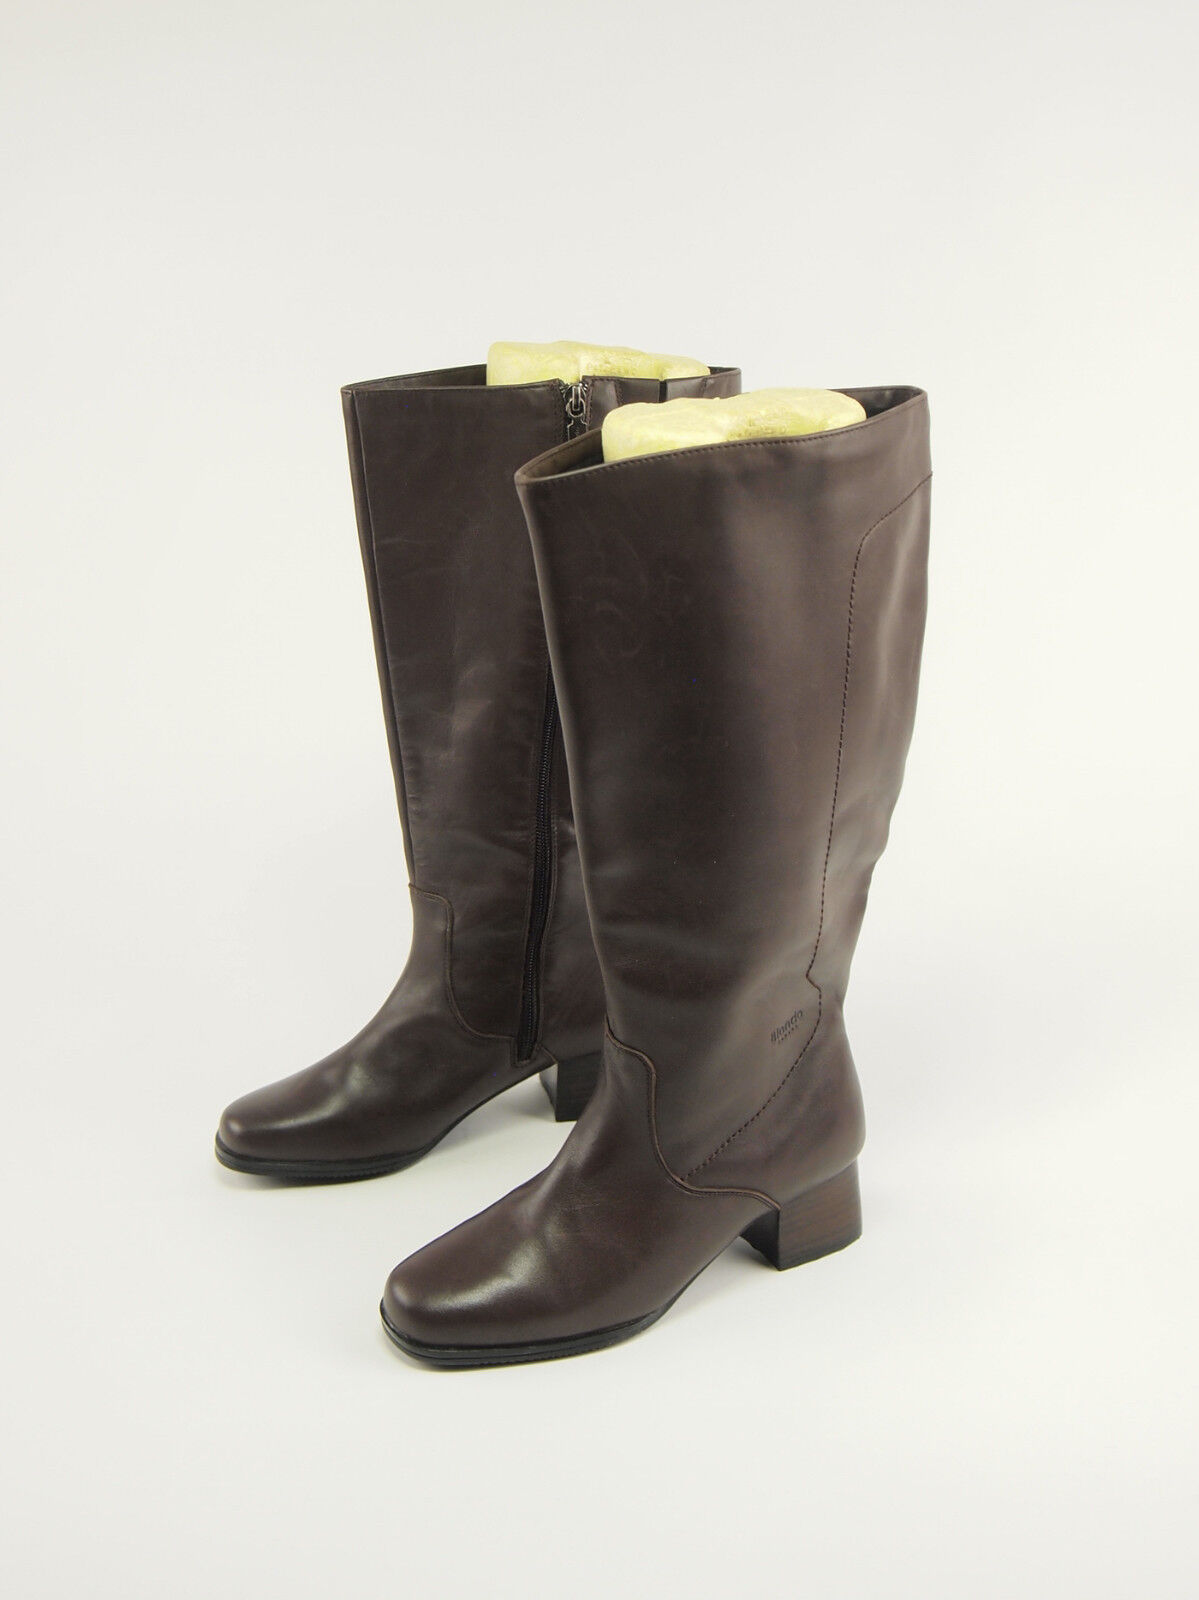 BLONDO Brown Leather AquaProtect Winter Wide-calf Tall Boots 6 WIDE